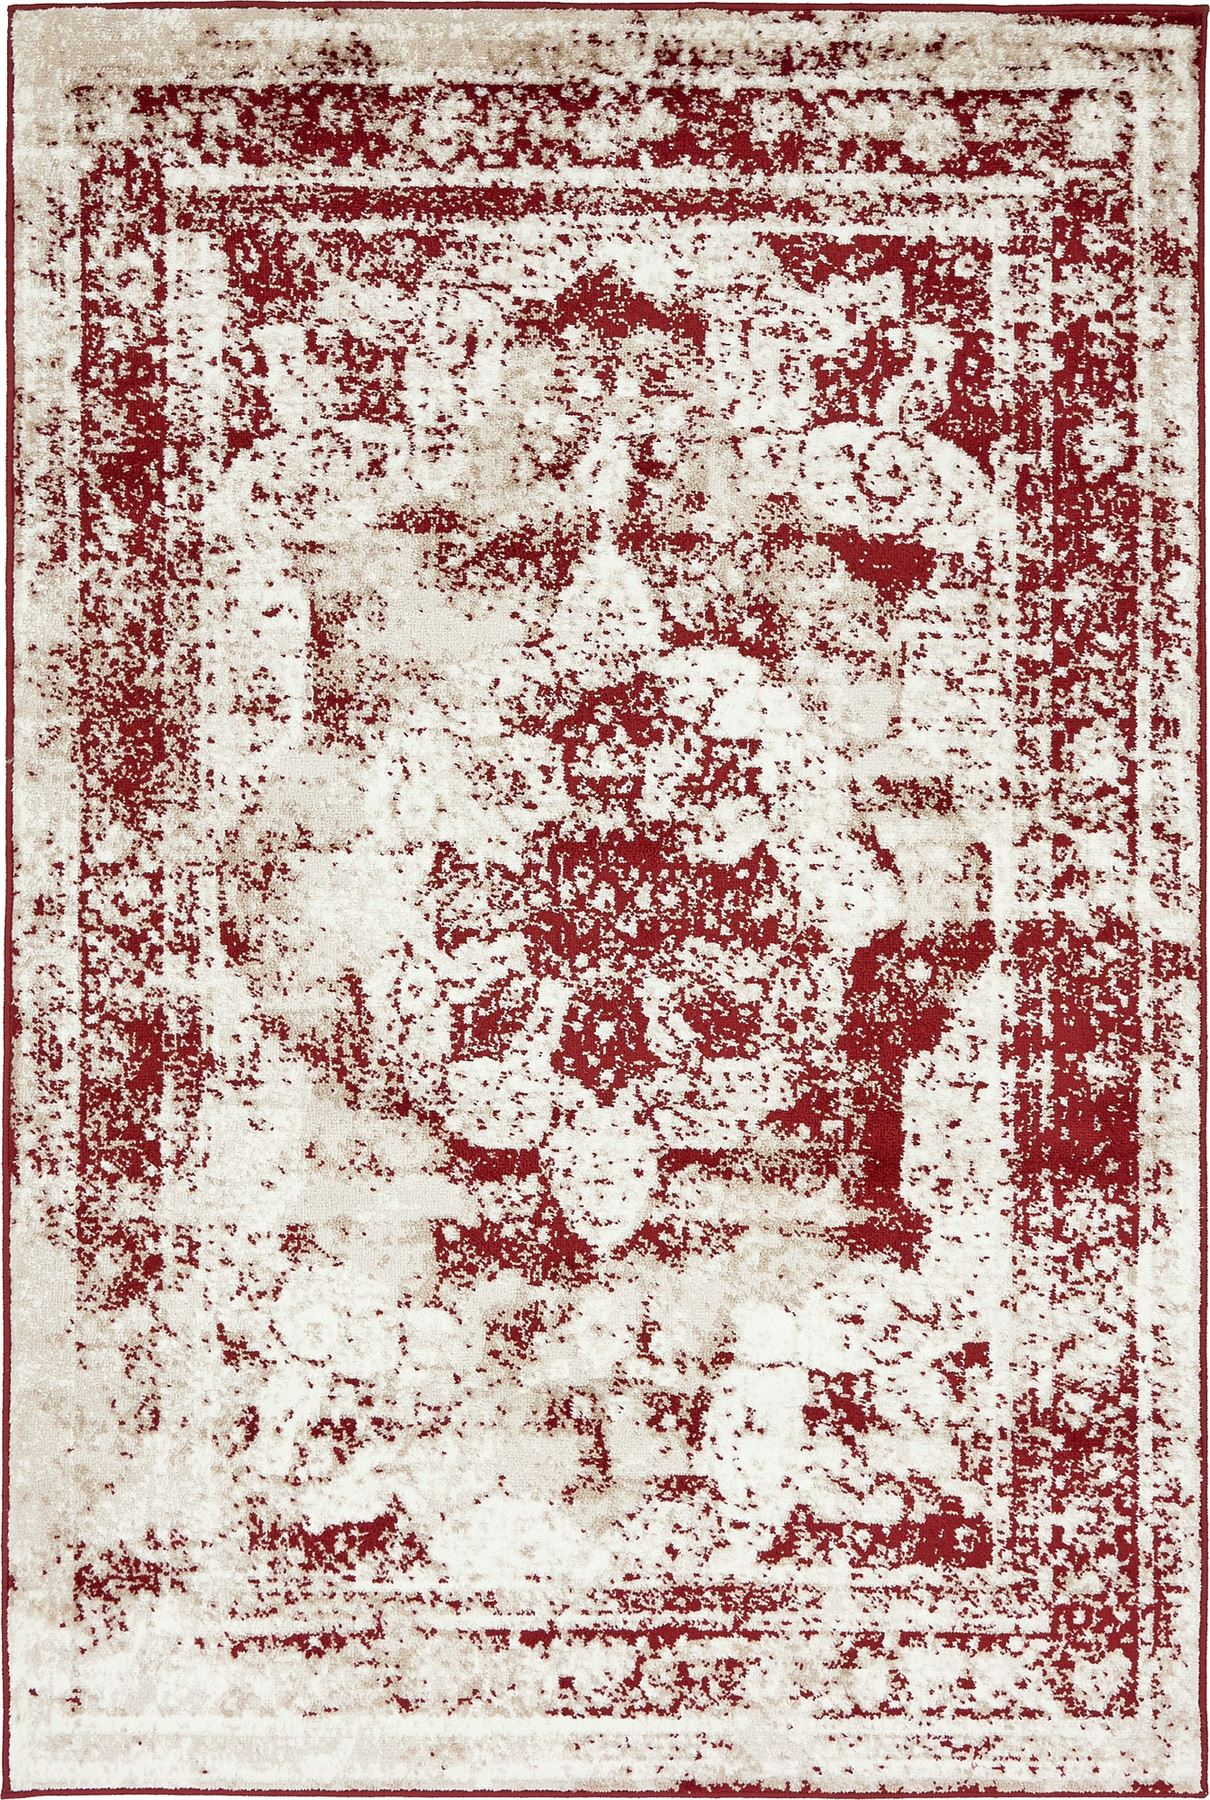 Asian carpet design-7731